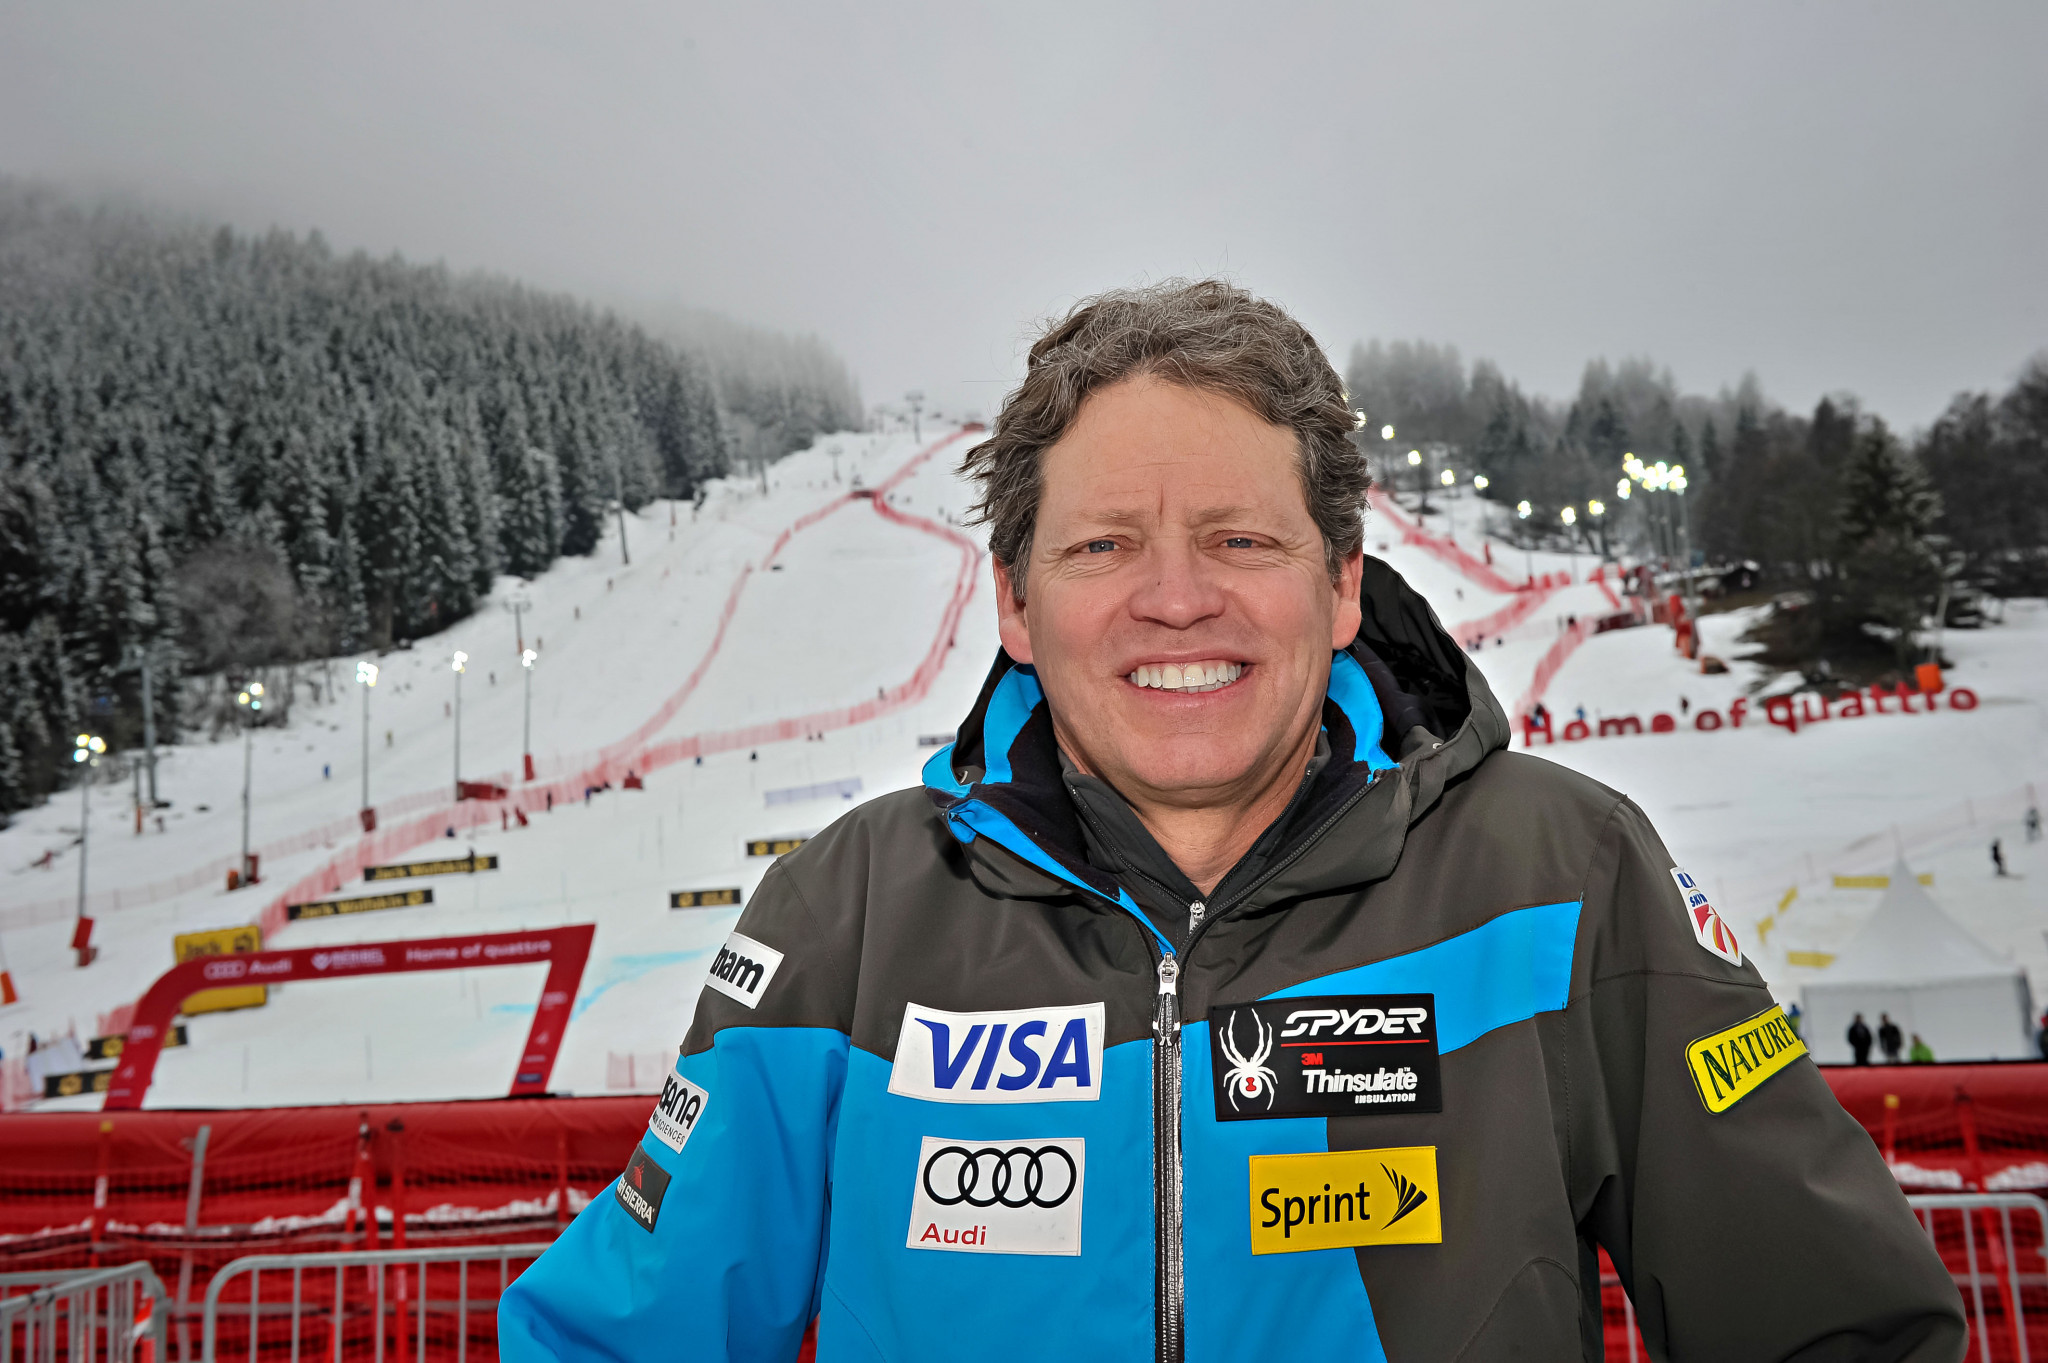 US Ski and Snowboard President and chief executive Tiger Shaw said it was an